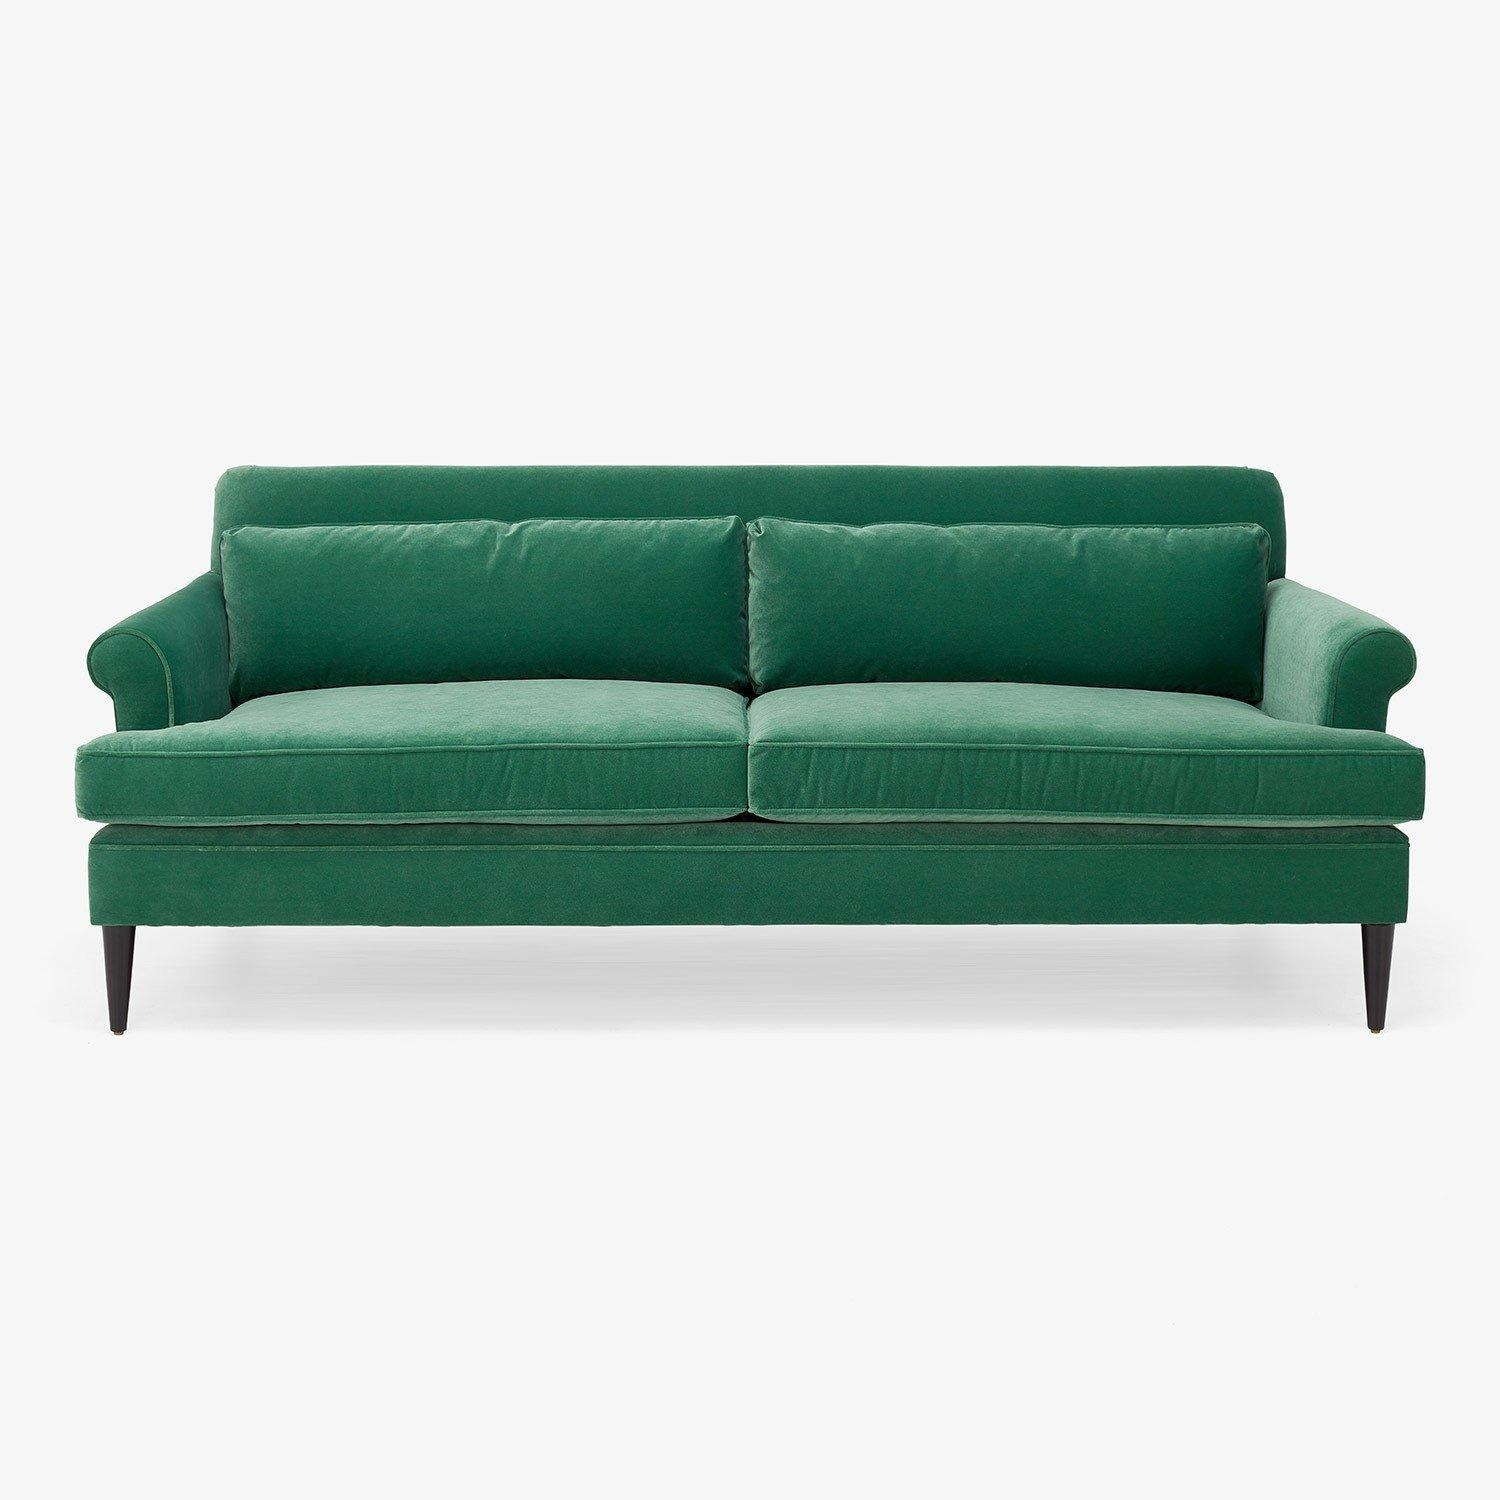 Sofas, Couches, And Loveseats For Your Nyc Apartment At Abc Home For Classic English Sofas (View 15 of 21)